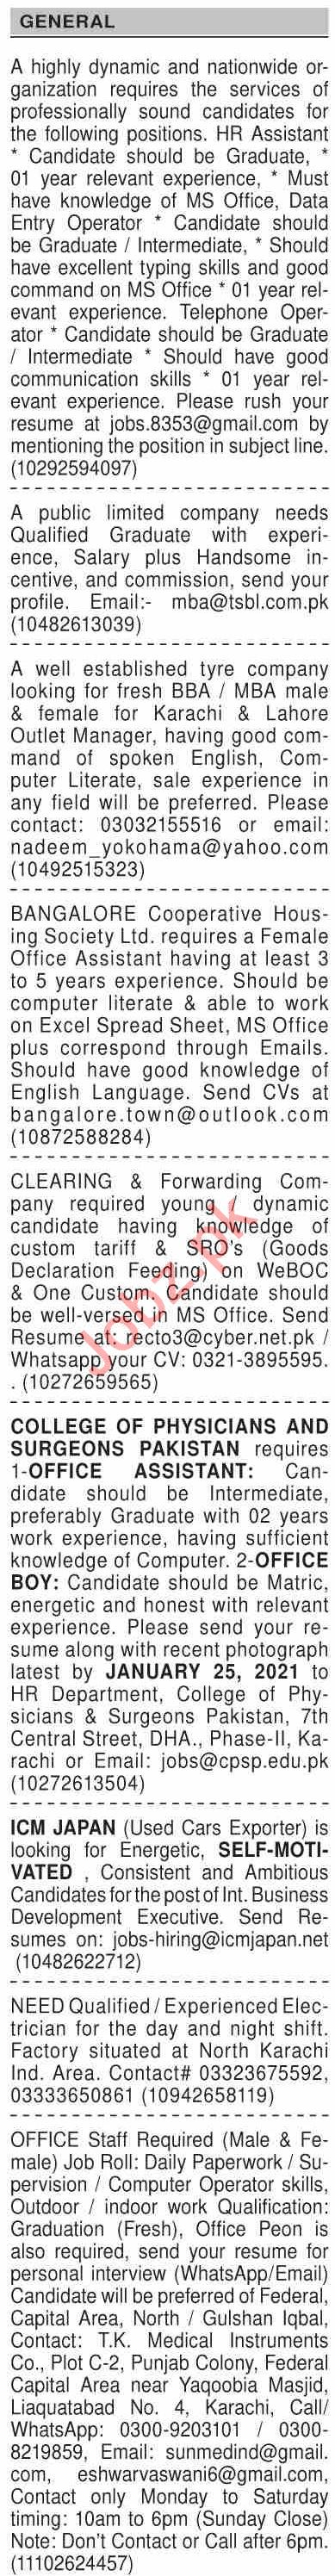 Dawn Sunday Classified Ads 10 Jan 2021 for General Staff